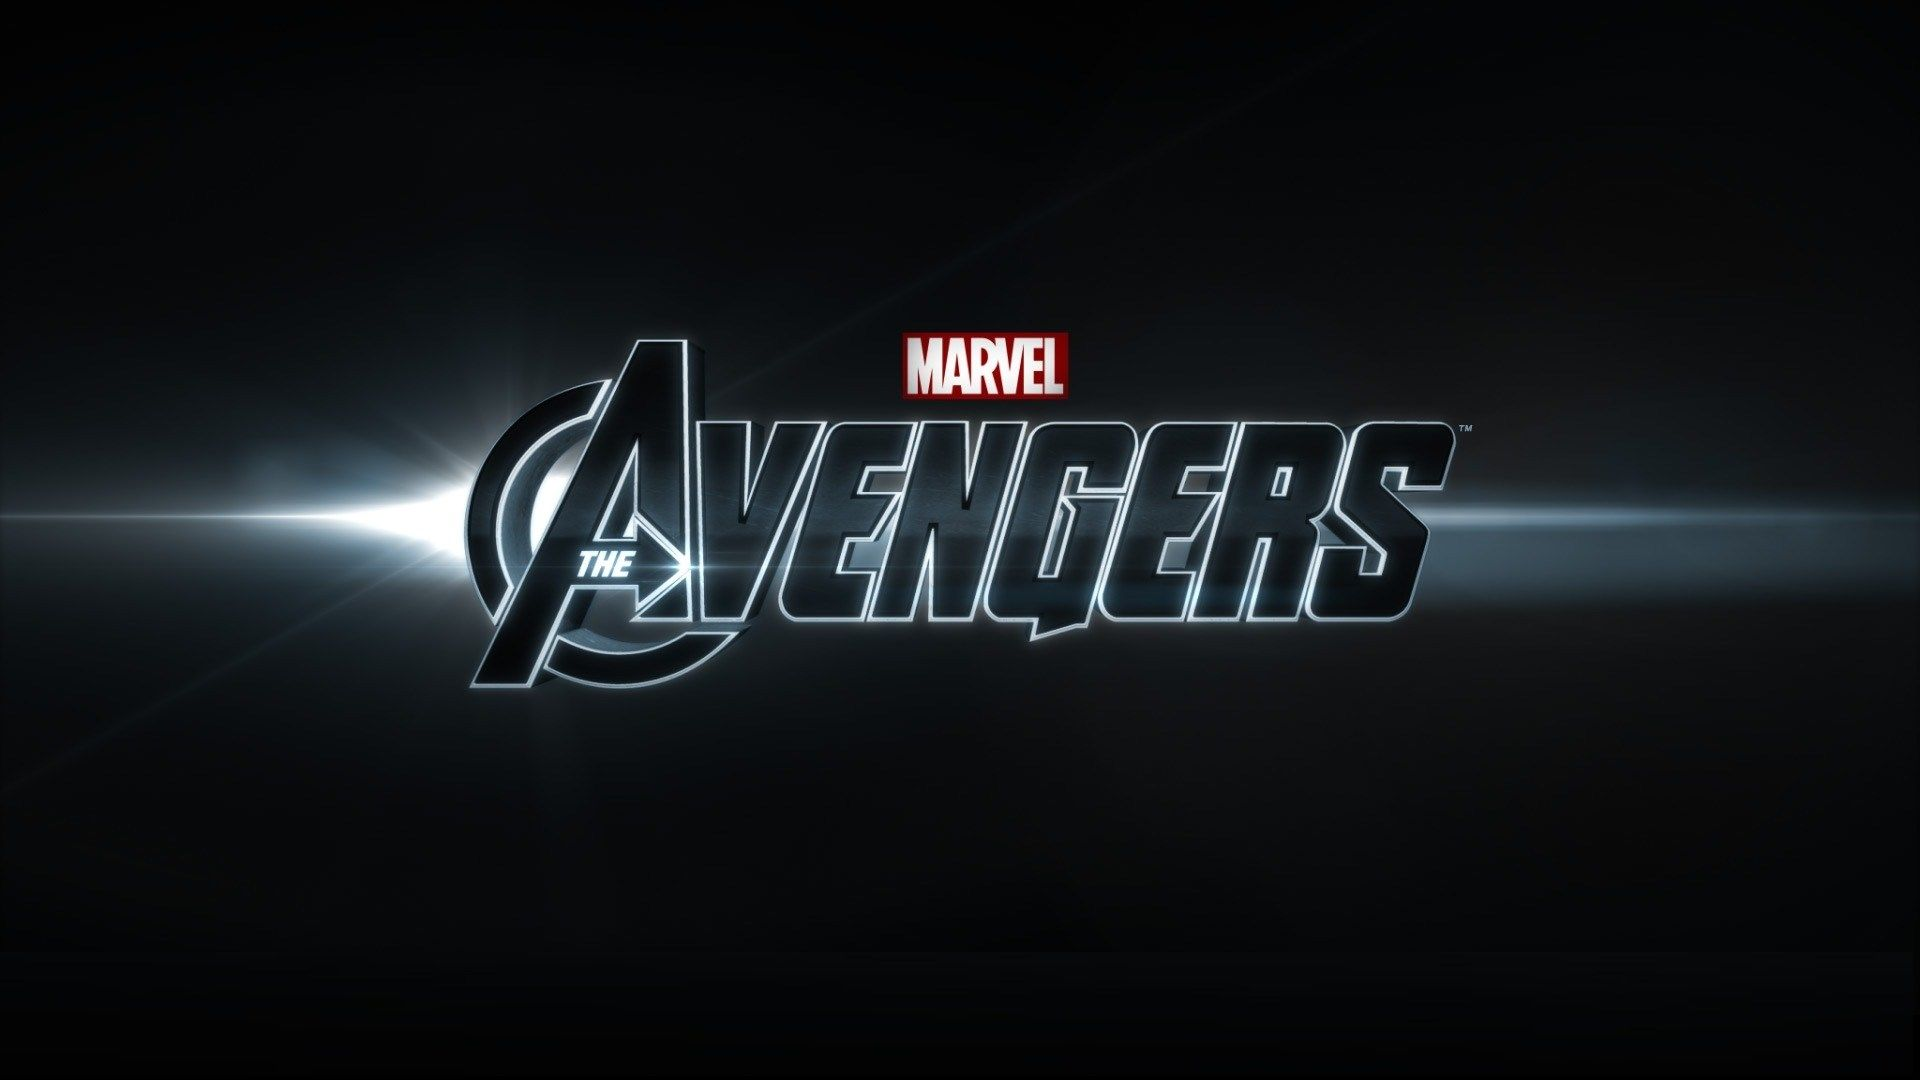 Logo Avengers Wallpaper Hd Pictures Download Avengers Movies